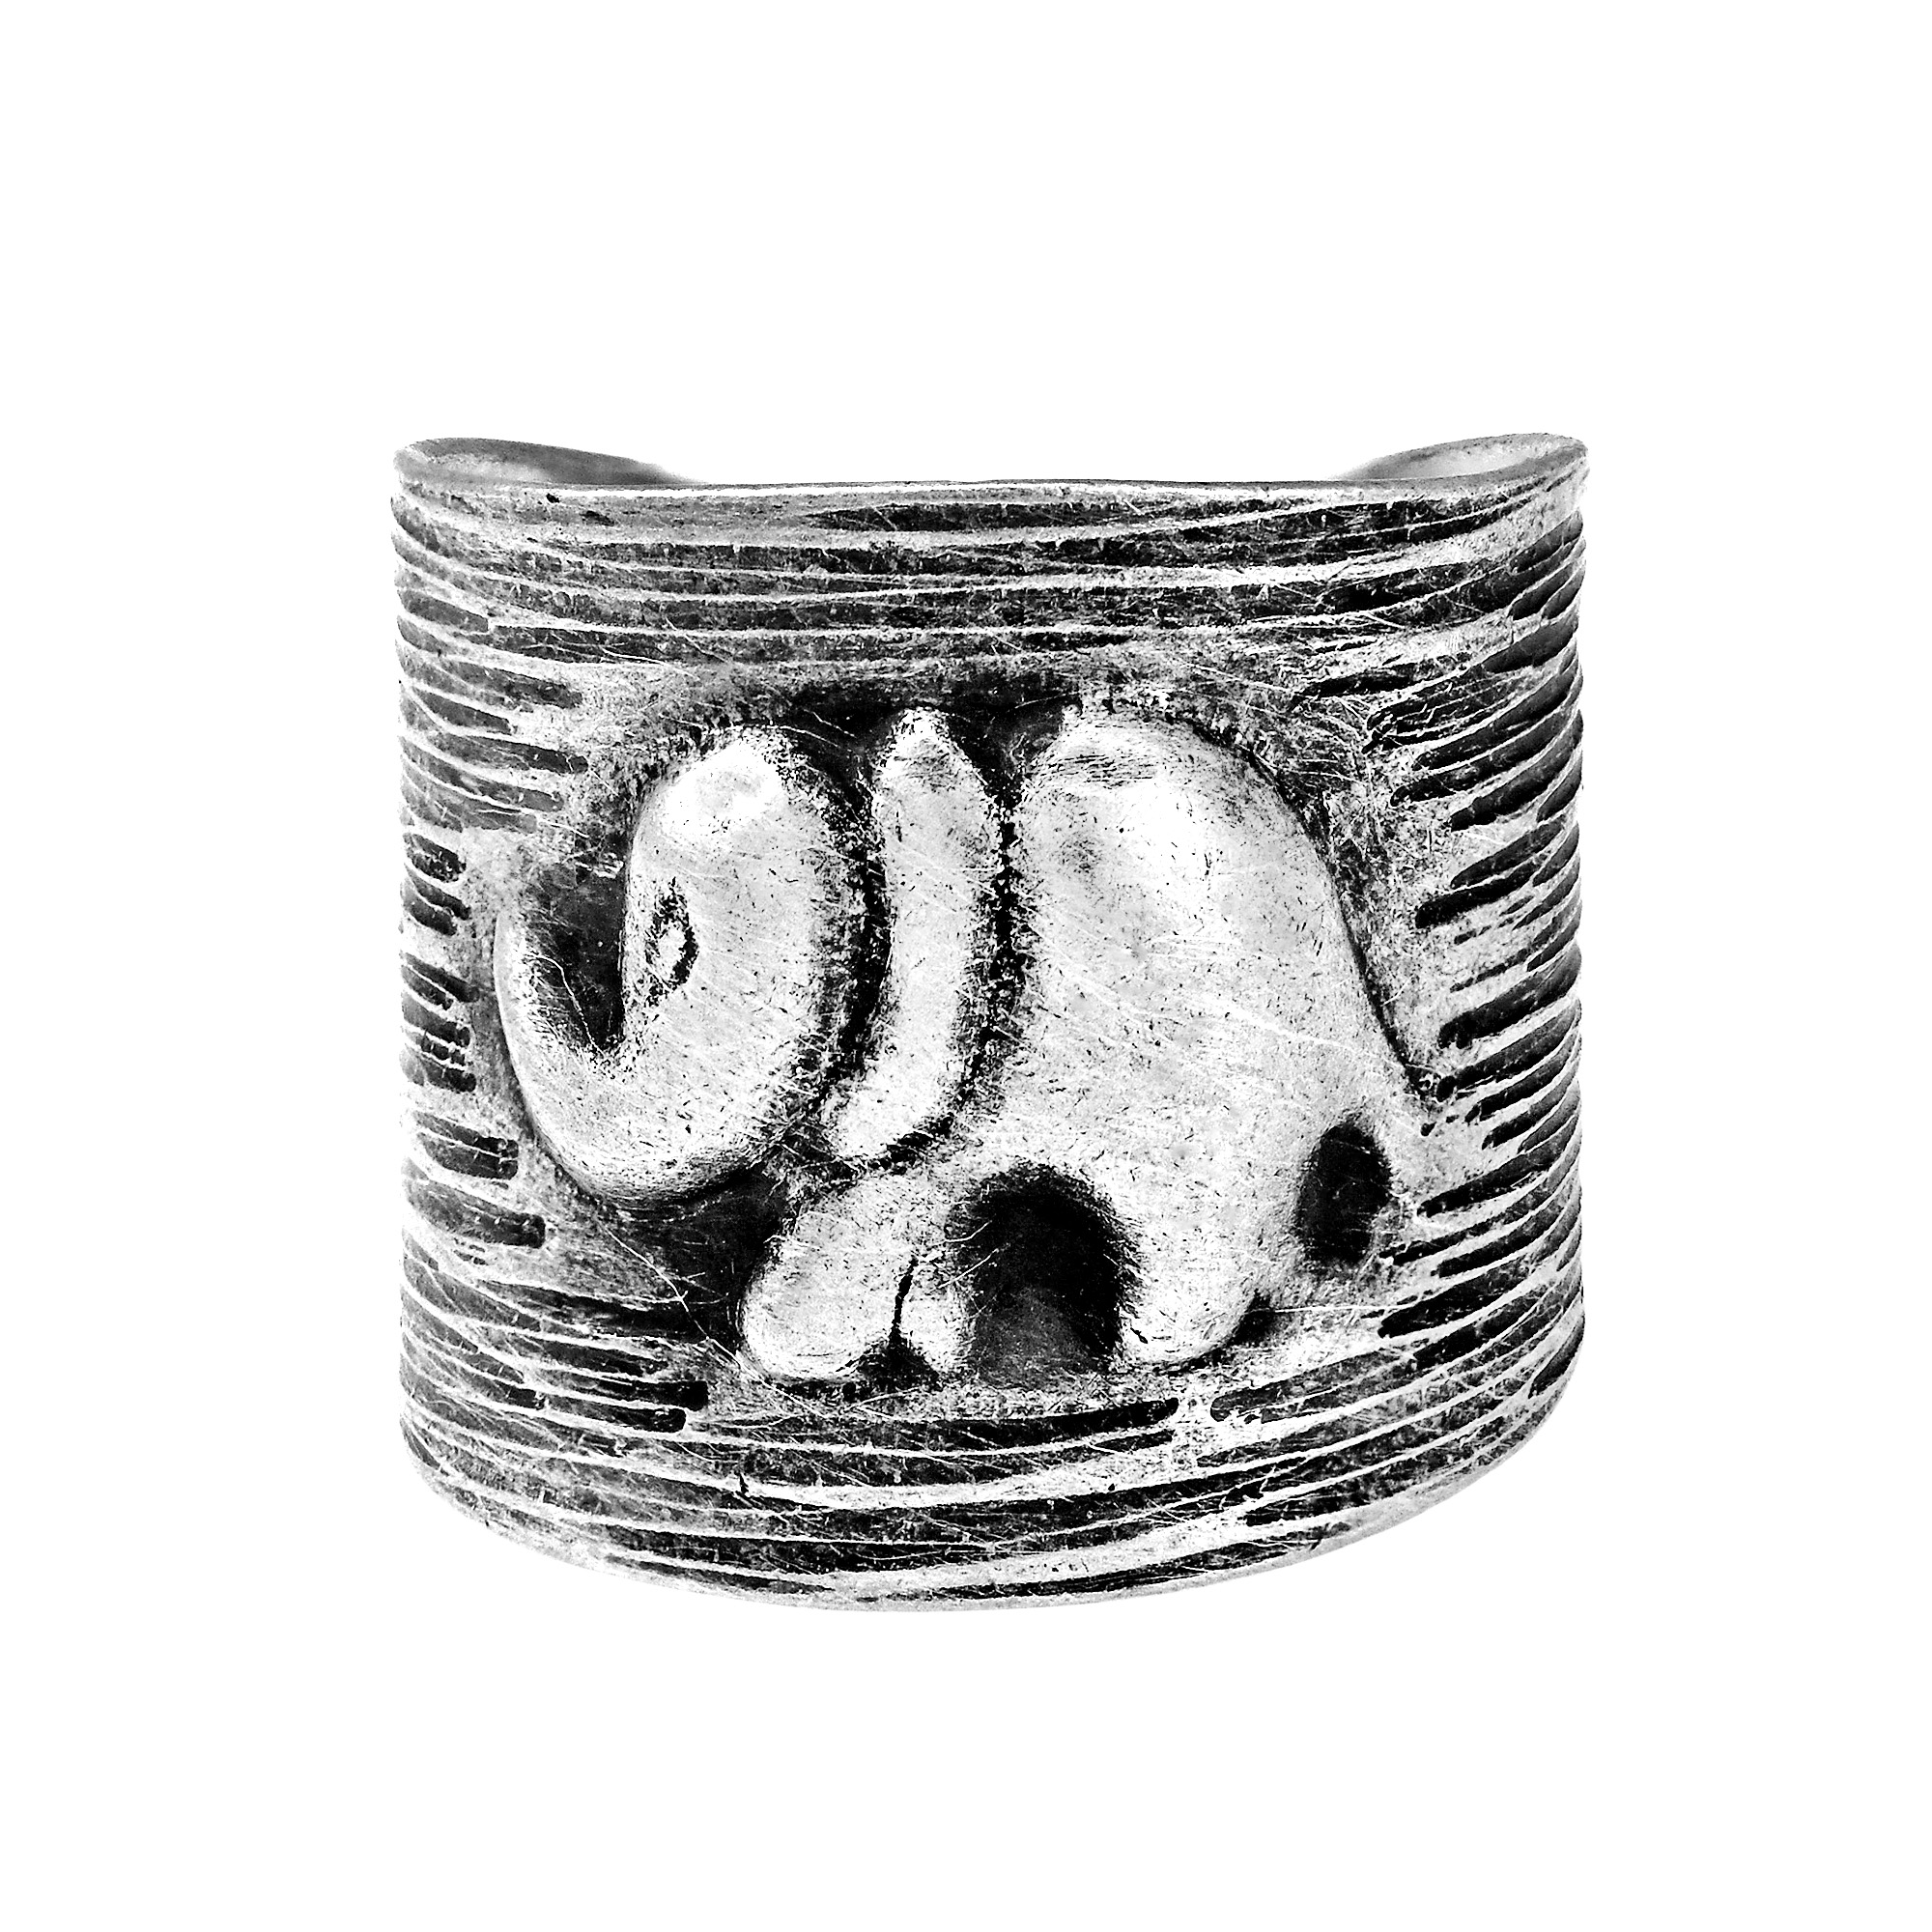 Hematite jewelry - Hand Crafted Silver Wrap Ring with Elephant Motif